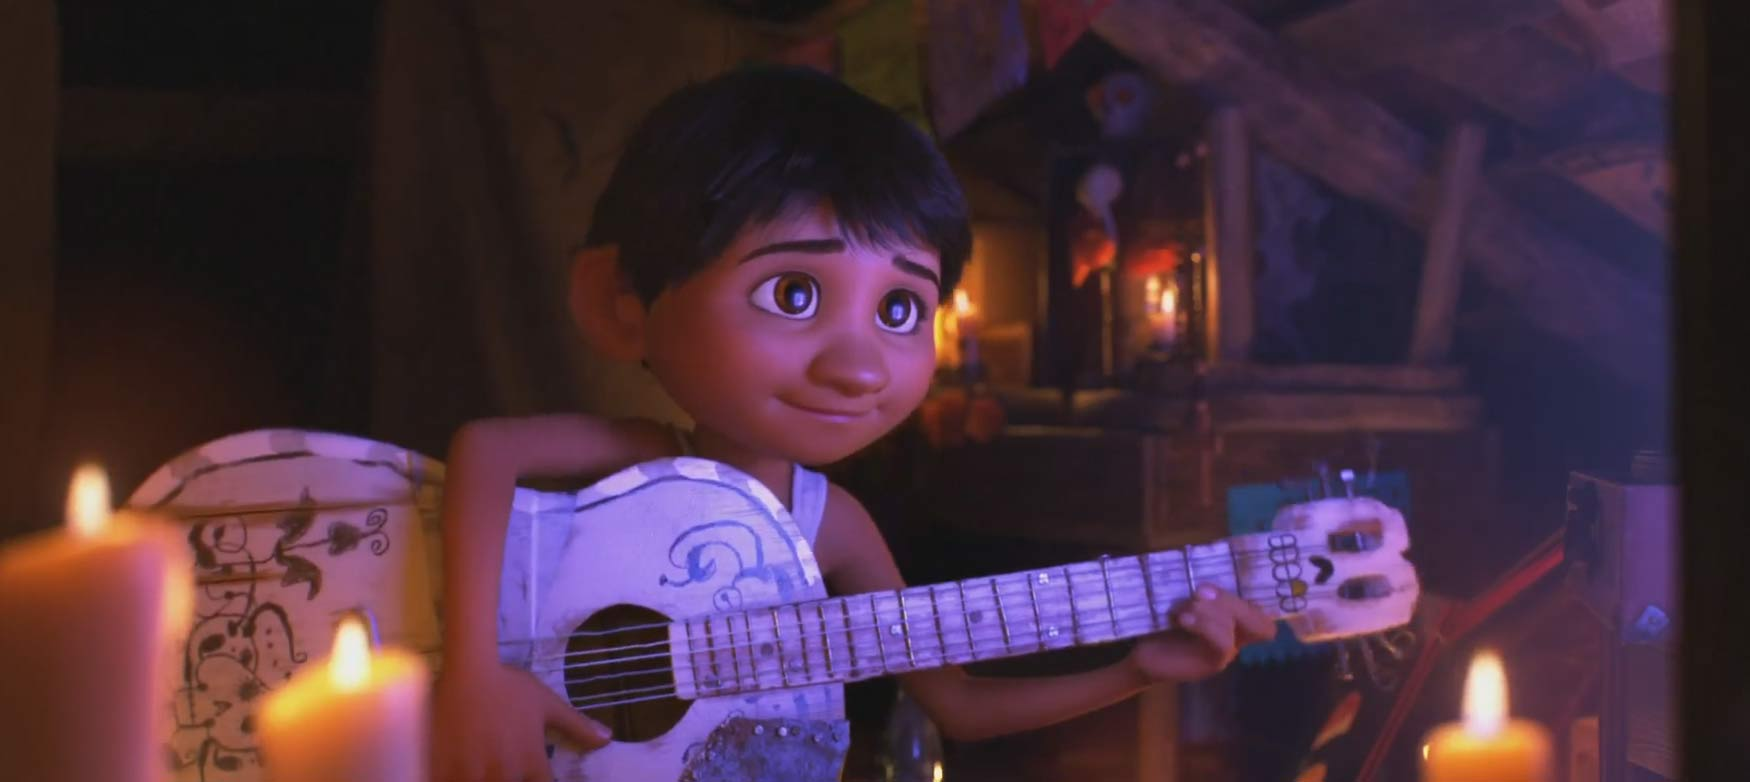 Coco Movie Animated Movie Wallpaper x Hd Image